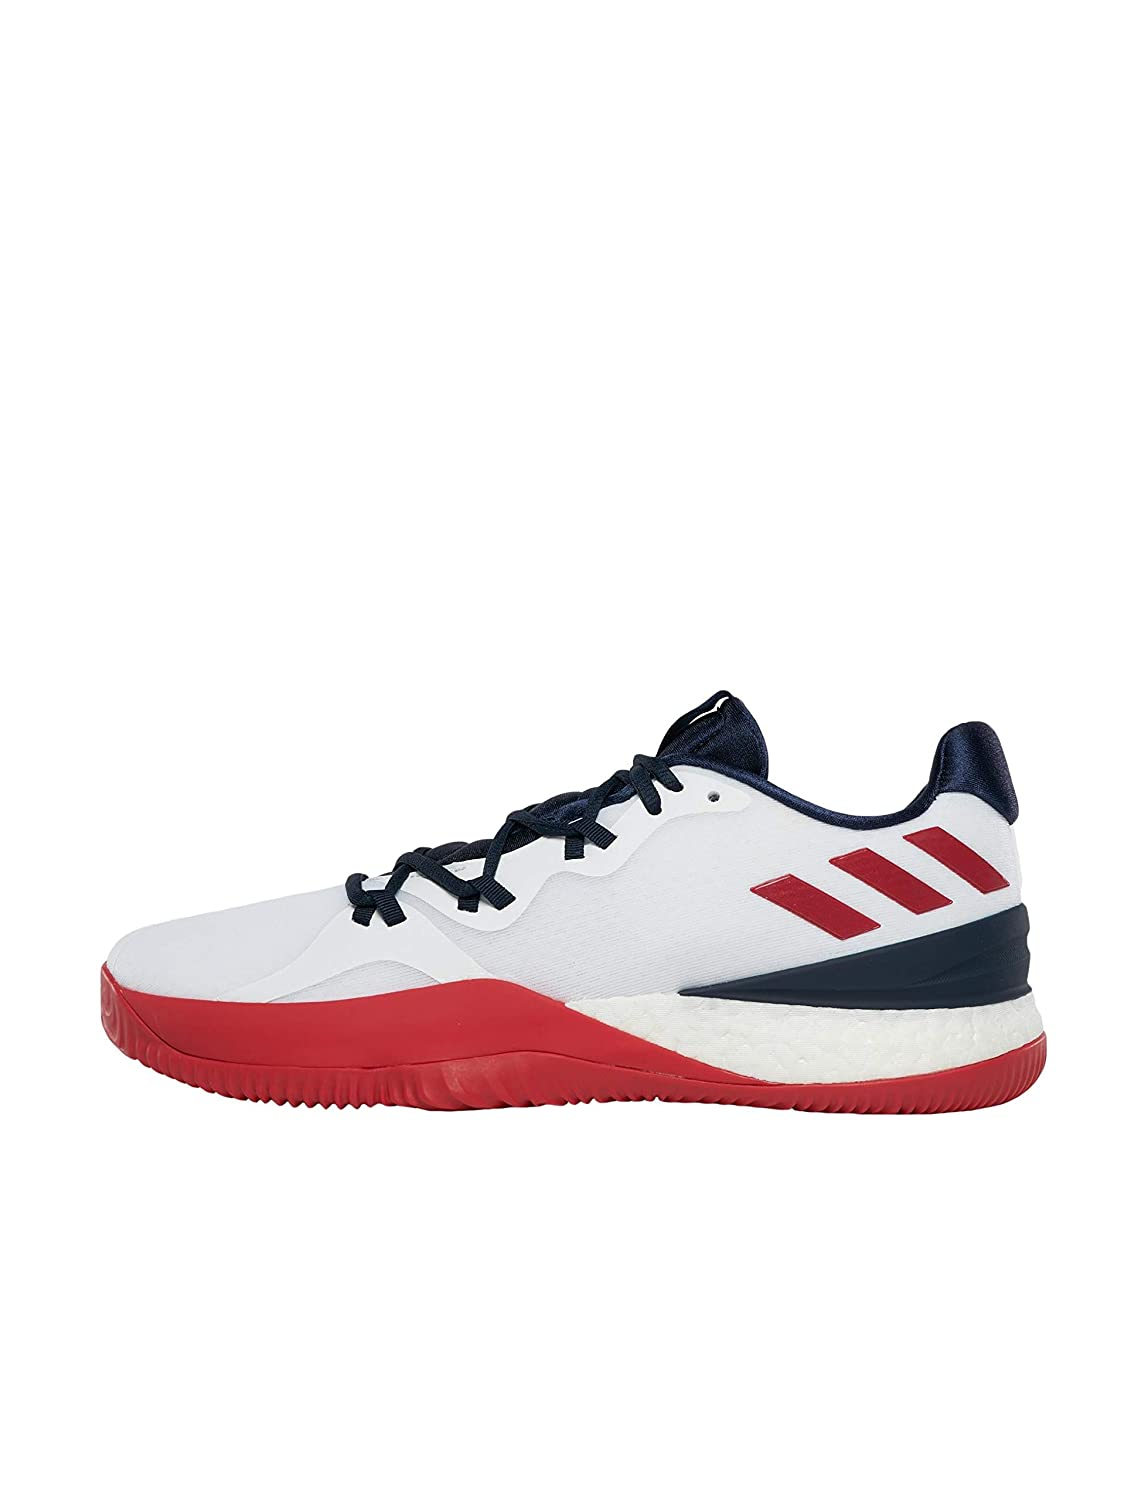 Blanc (Ftwr blanc Scarlet Collegiate Navy) adidas Crazy Light Boost 2018, Chaussures de Basketball Homme 47 1 3 EU